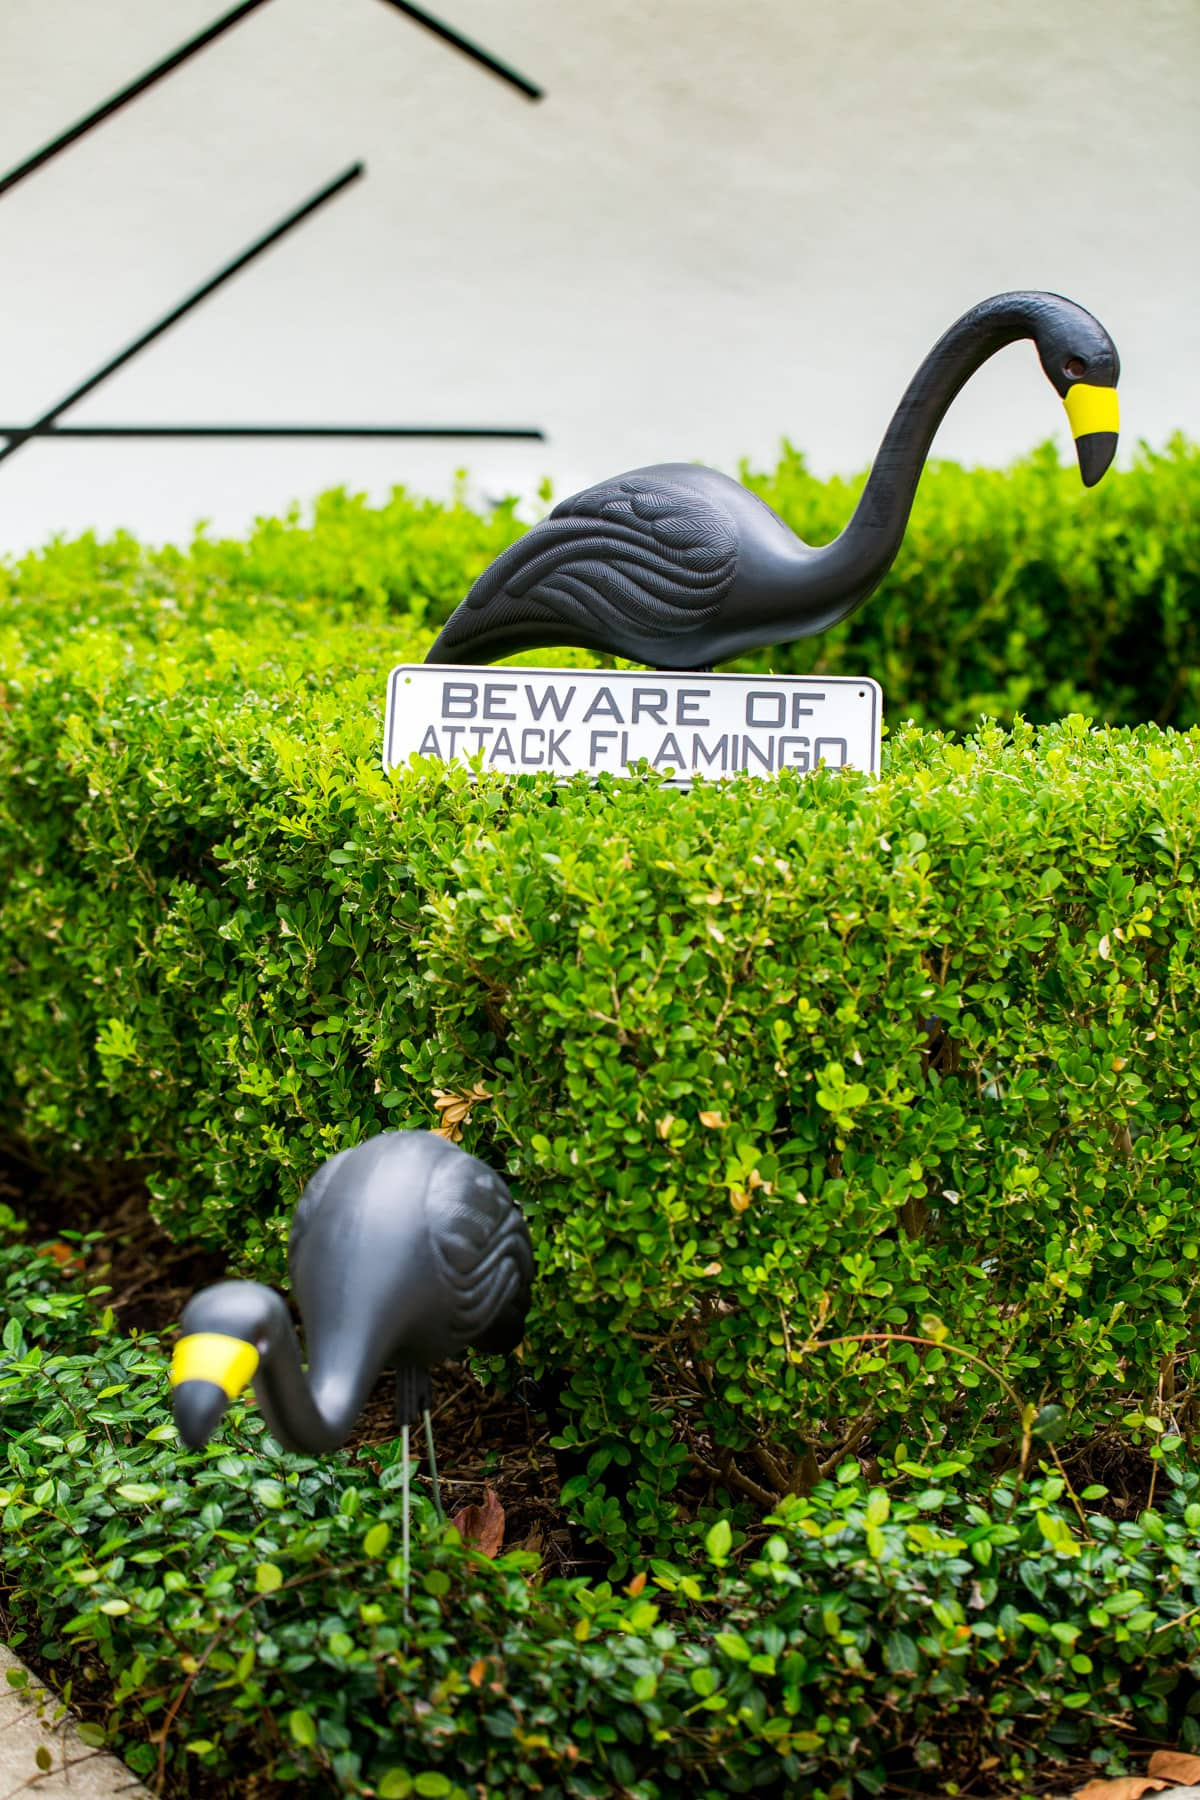 beware of the attack flamingos! - Palm Springs Inspired Halloween Entryway Decor & Product Round Up by top Houston lifestyle blogger Ashley Rose - #halloweendecor #halloween #decor #home #holidays #curbappeal #palmsprings #midcentury